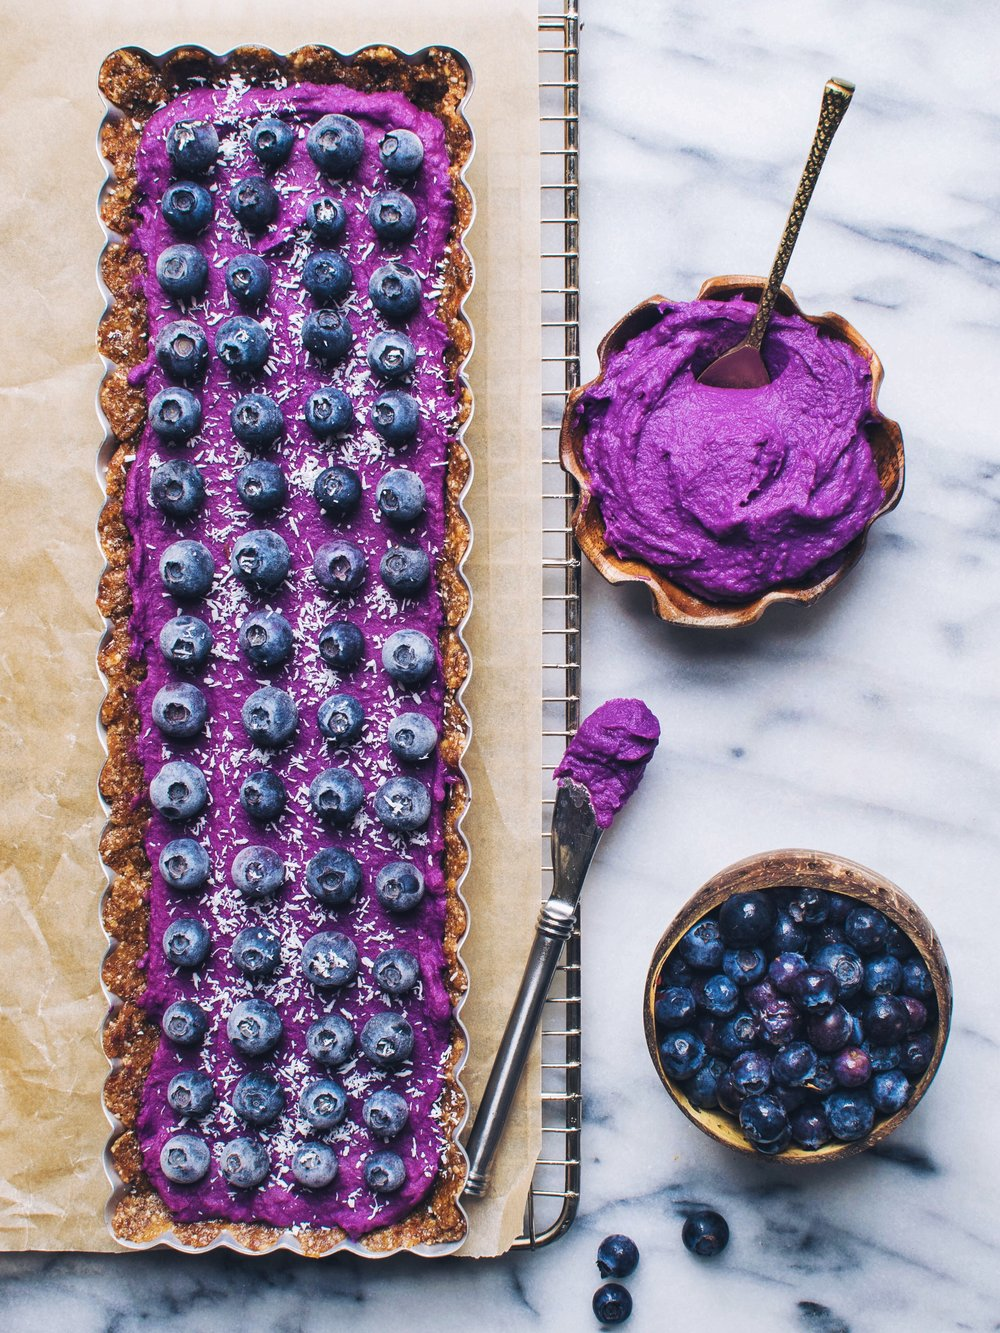 vegan, gluten-free purple sweet potato tart